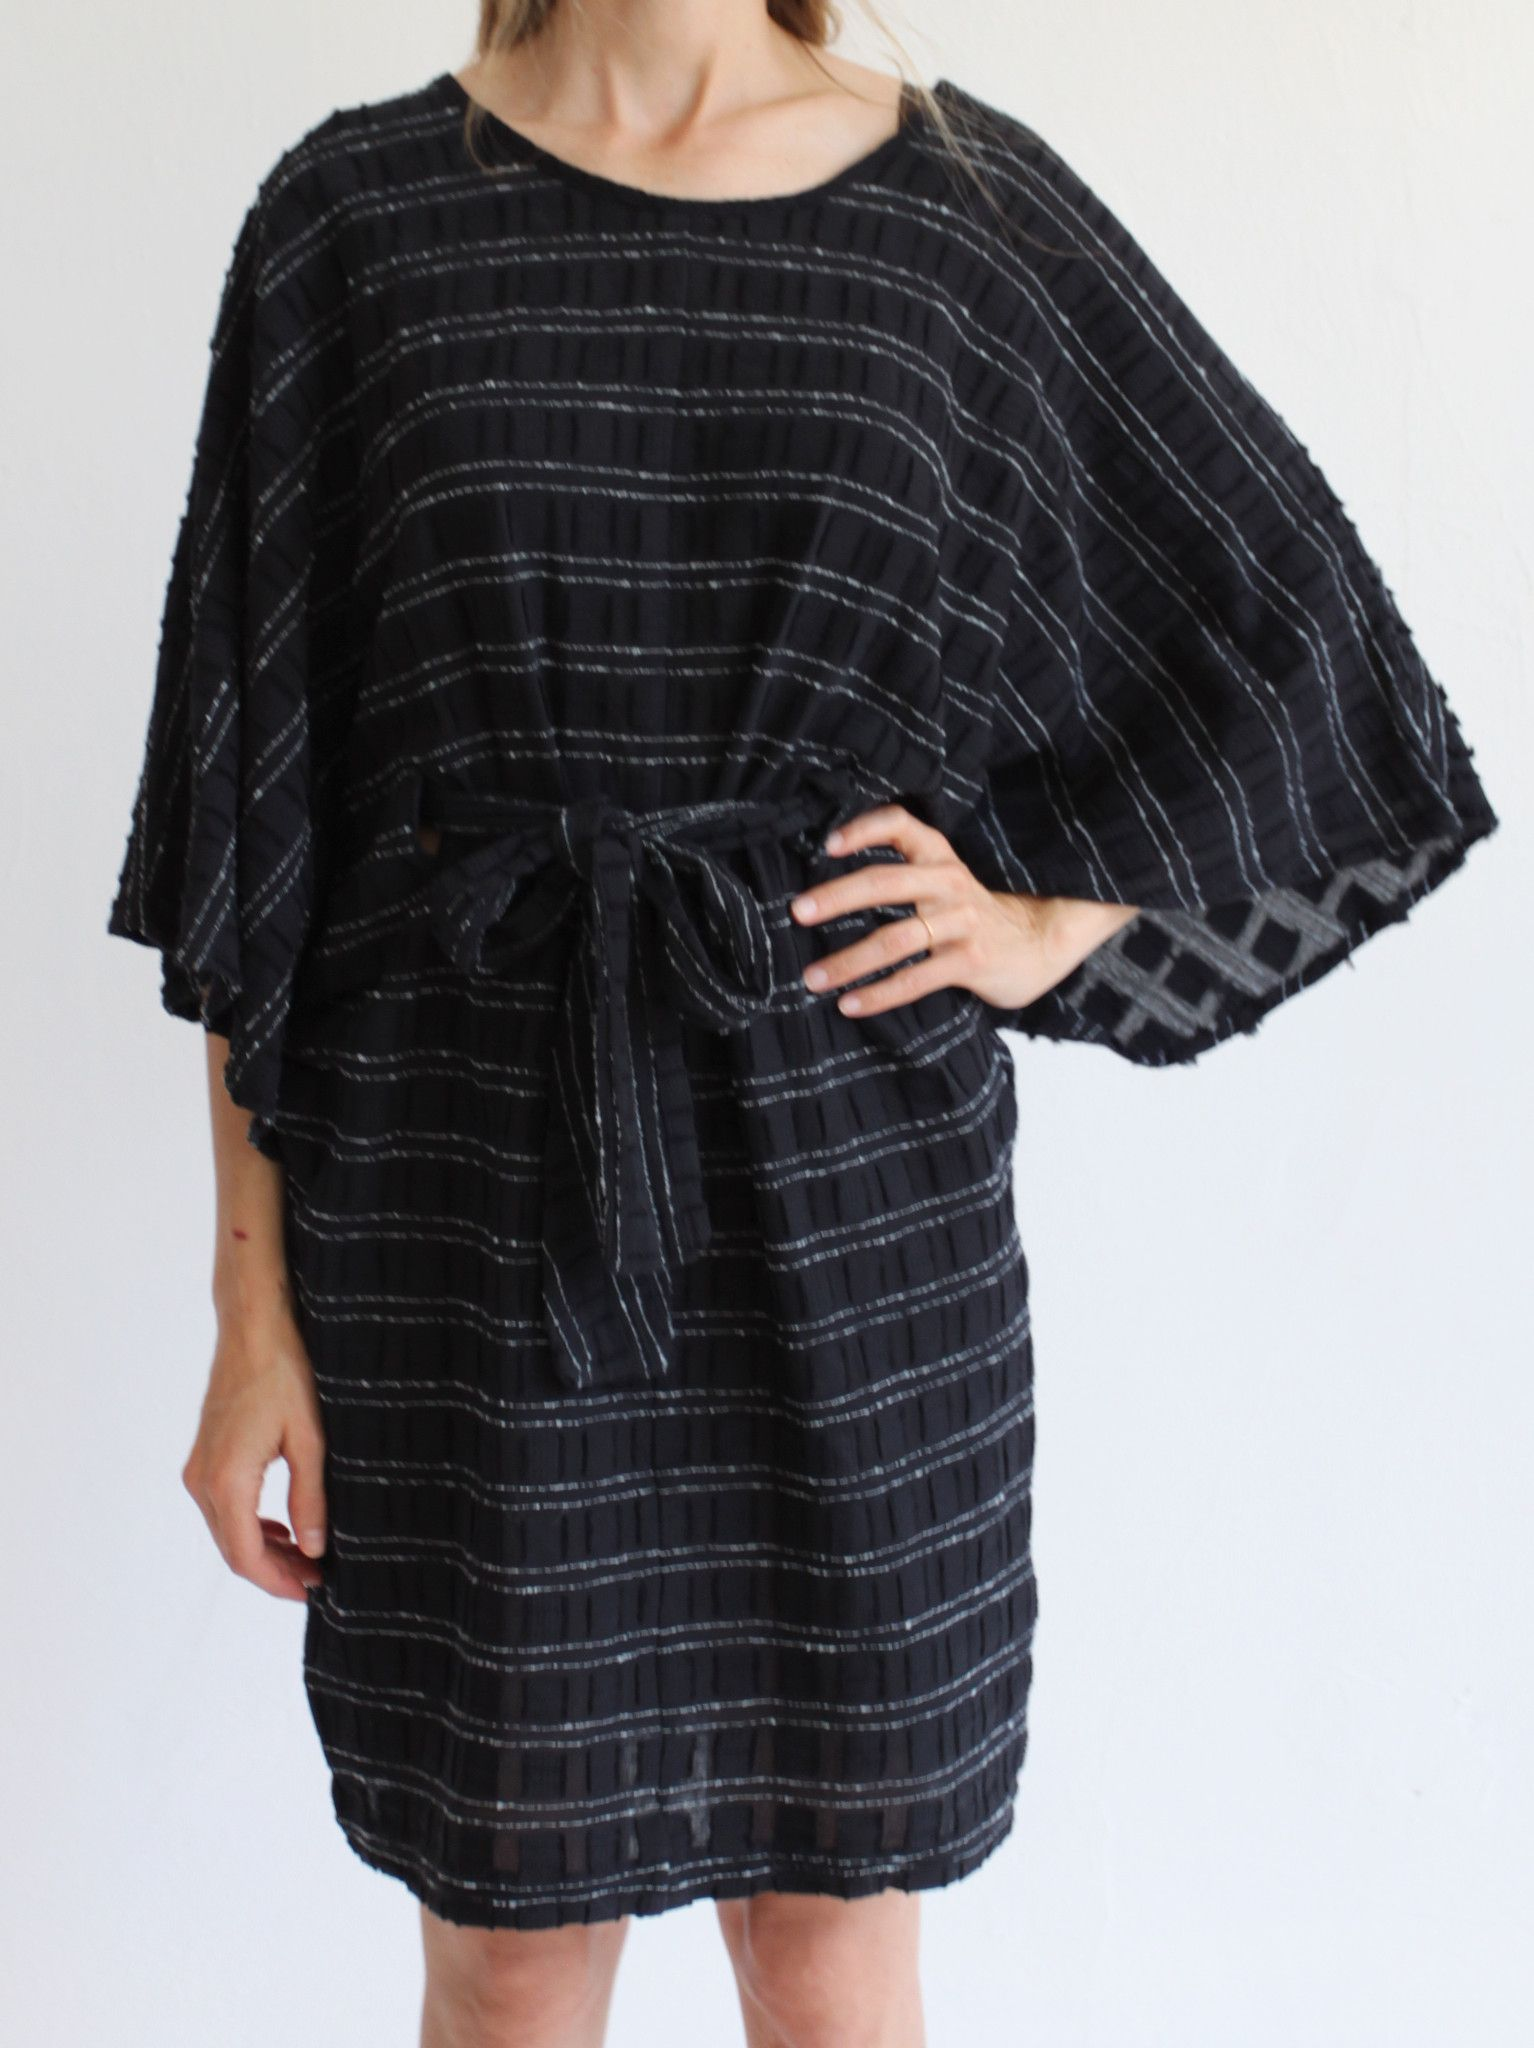 ace and jig zodiac caftan dress at Mille